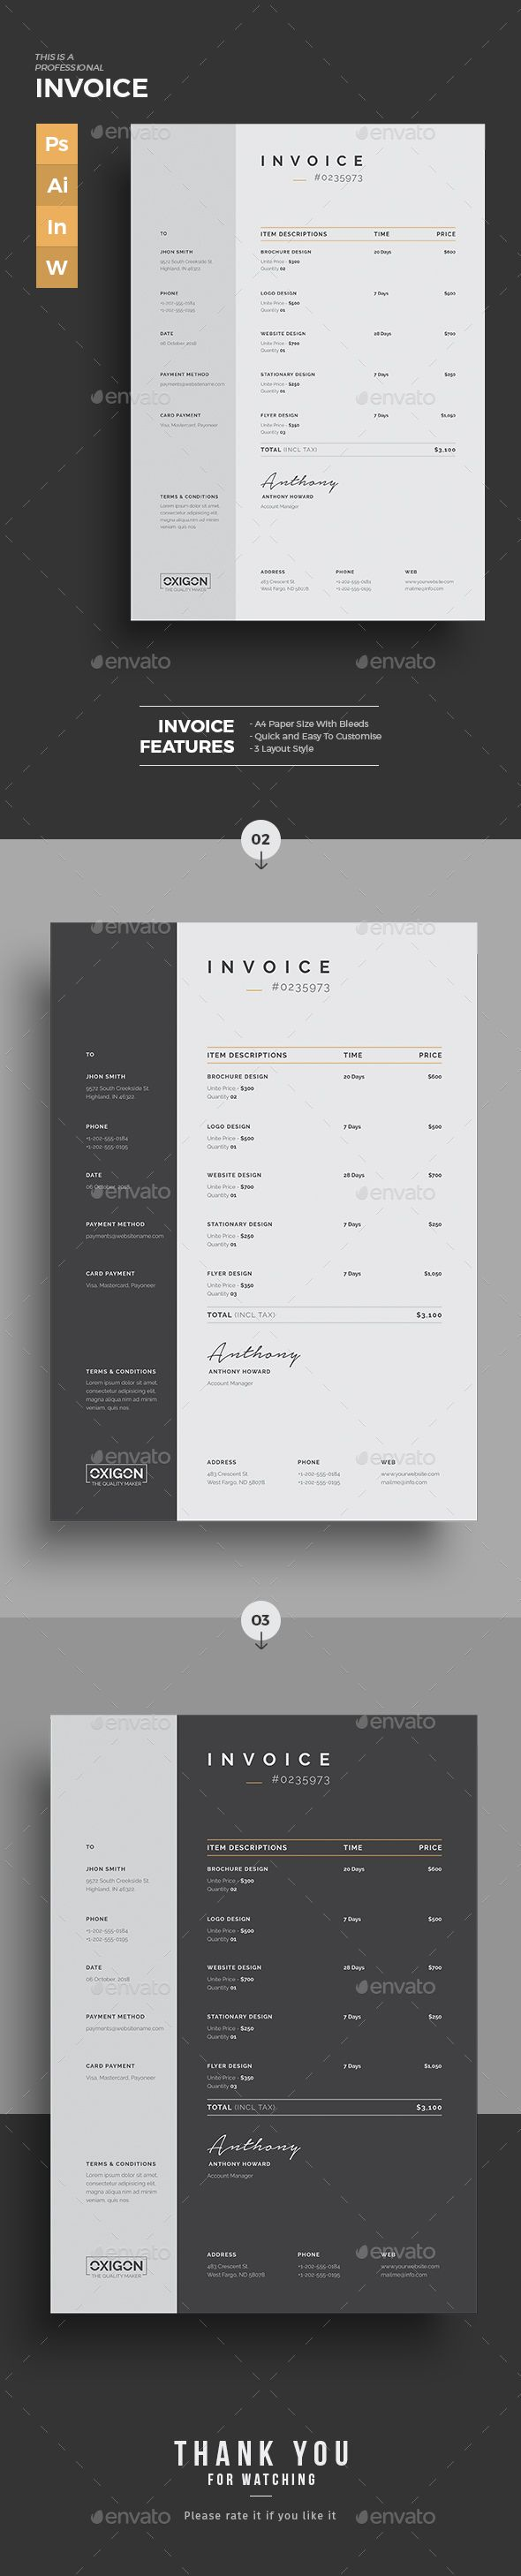 Sample Of An Invoice For Services Best  Invoice Design Ideas On Pinterest  Invoice Layout  Template For Receipt Excel with Free Rent Receipts Templates Word Invoice Template Available In Excel  Word  Psd  Ai  Download Now Invoice Payment Template Excel